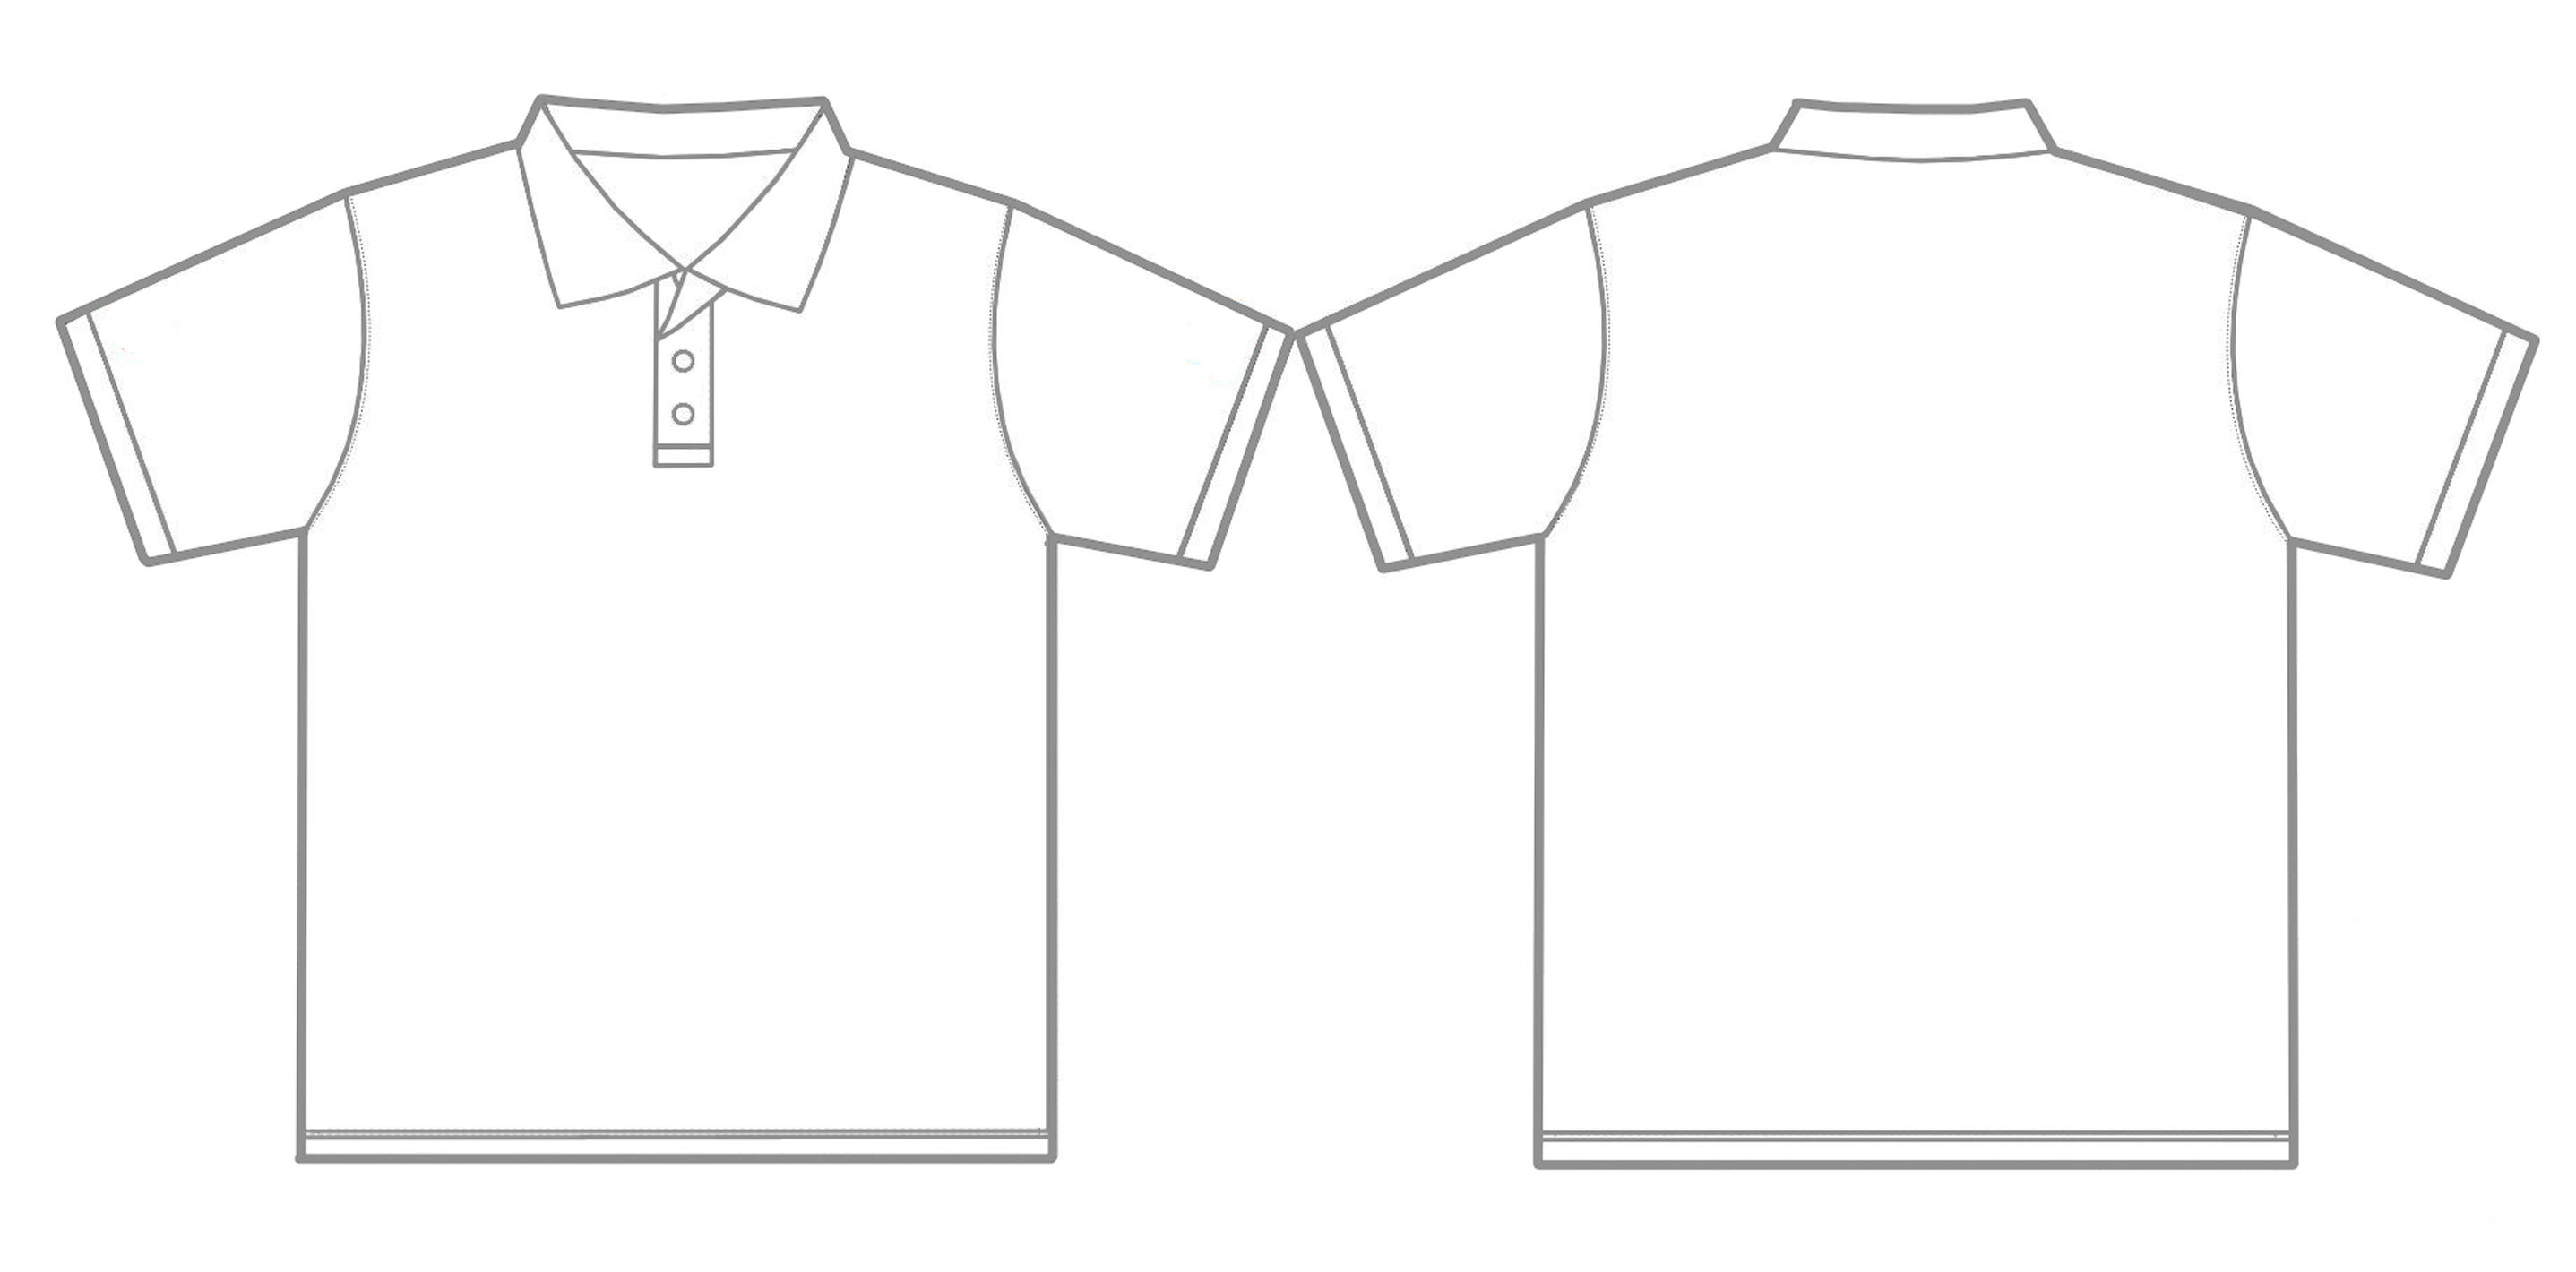 Polo shirt outline royalty free vector image vectorstock.